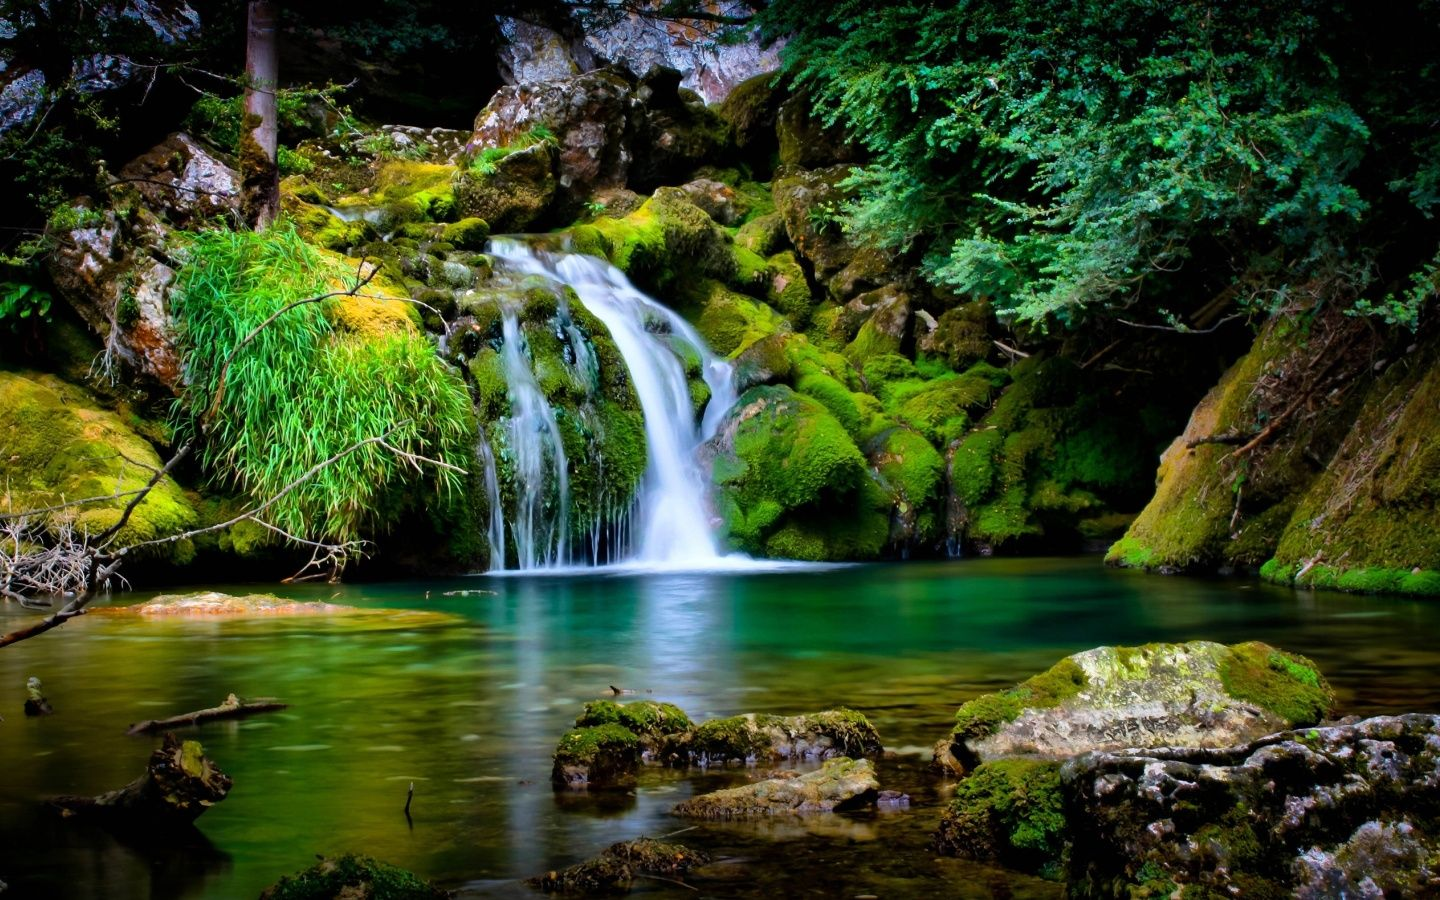 Hd Wallpapers Waterfall Scenery Waterfall Wallpaper Waterfall Pictures